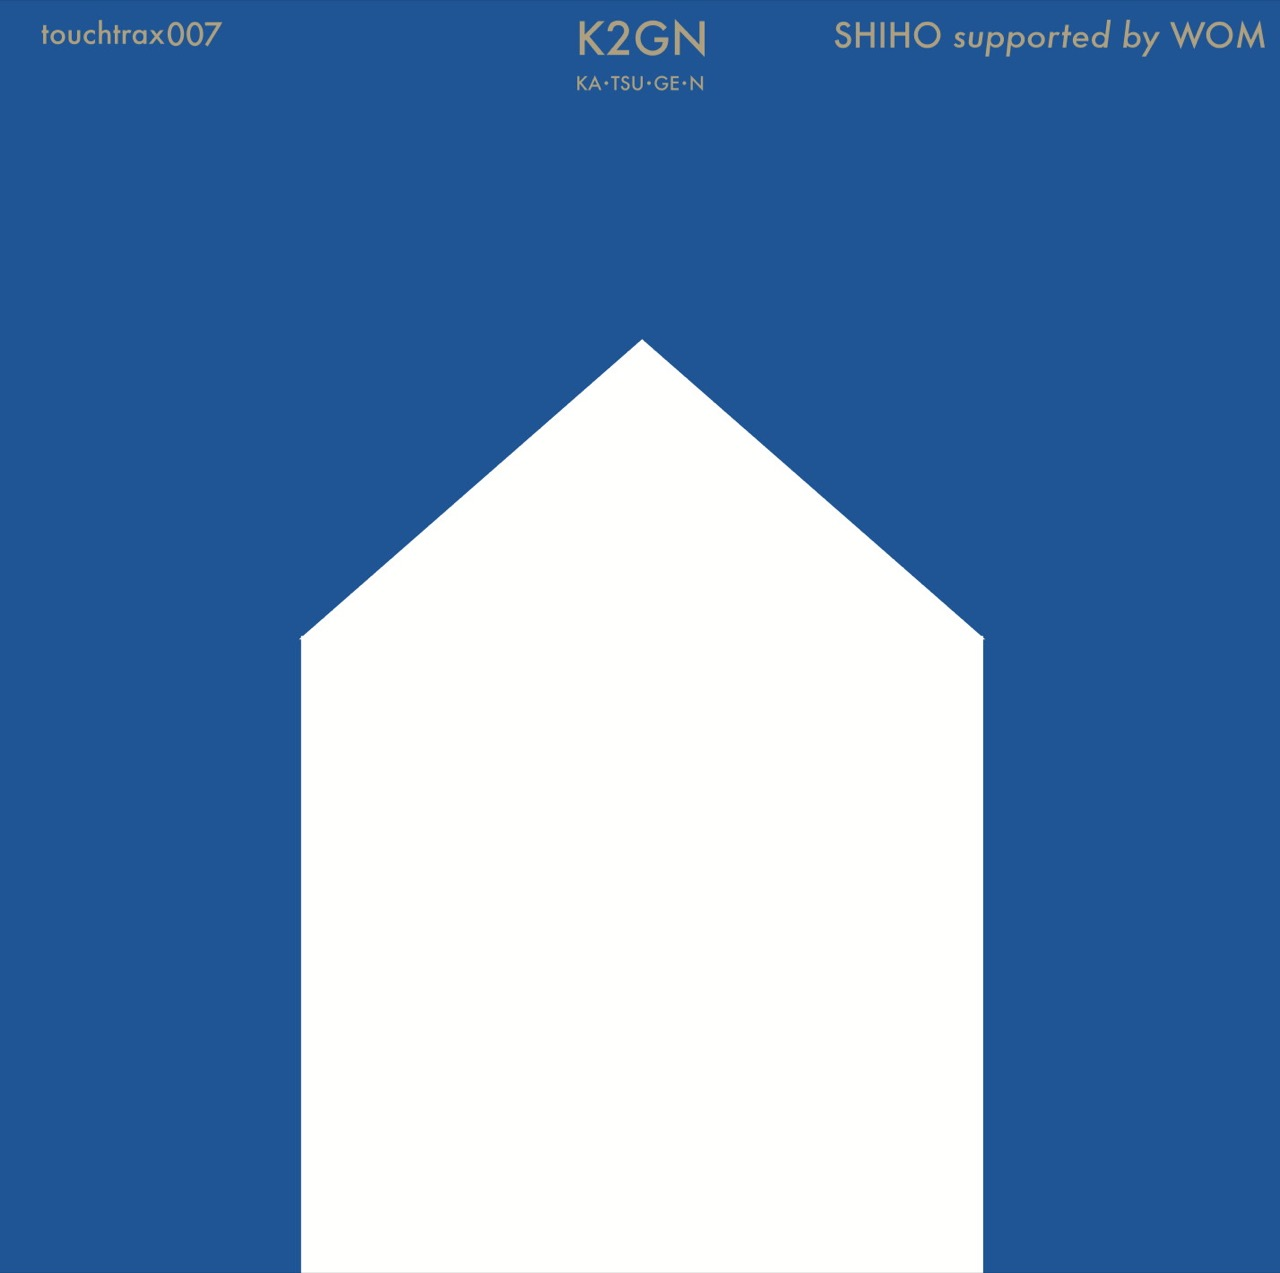 SHIHO supported by WOM 'touchtrax 007 : K2GN'